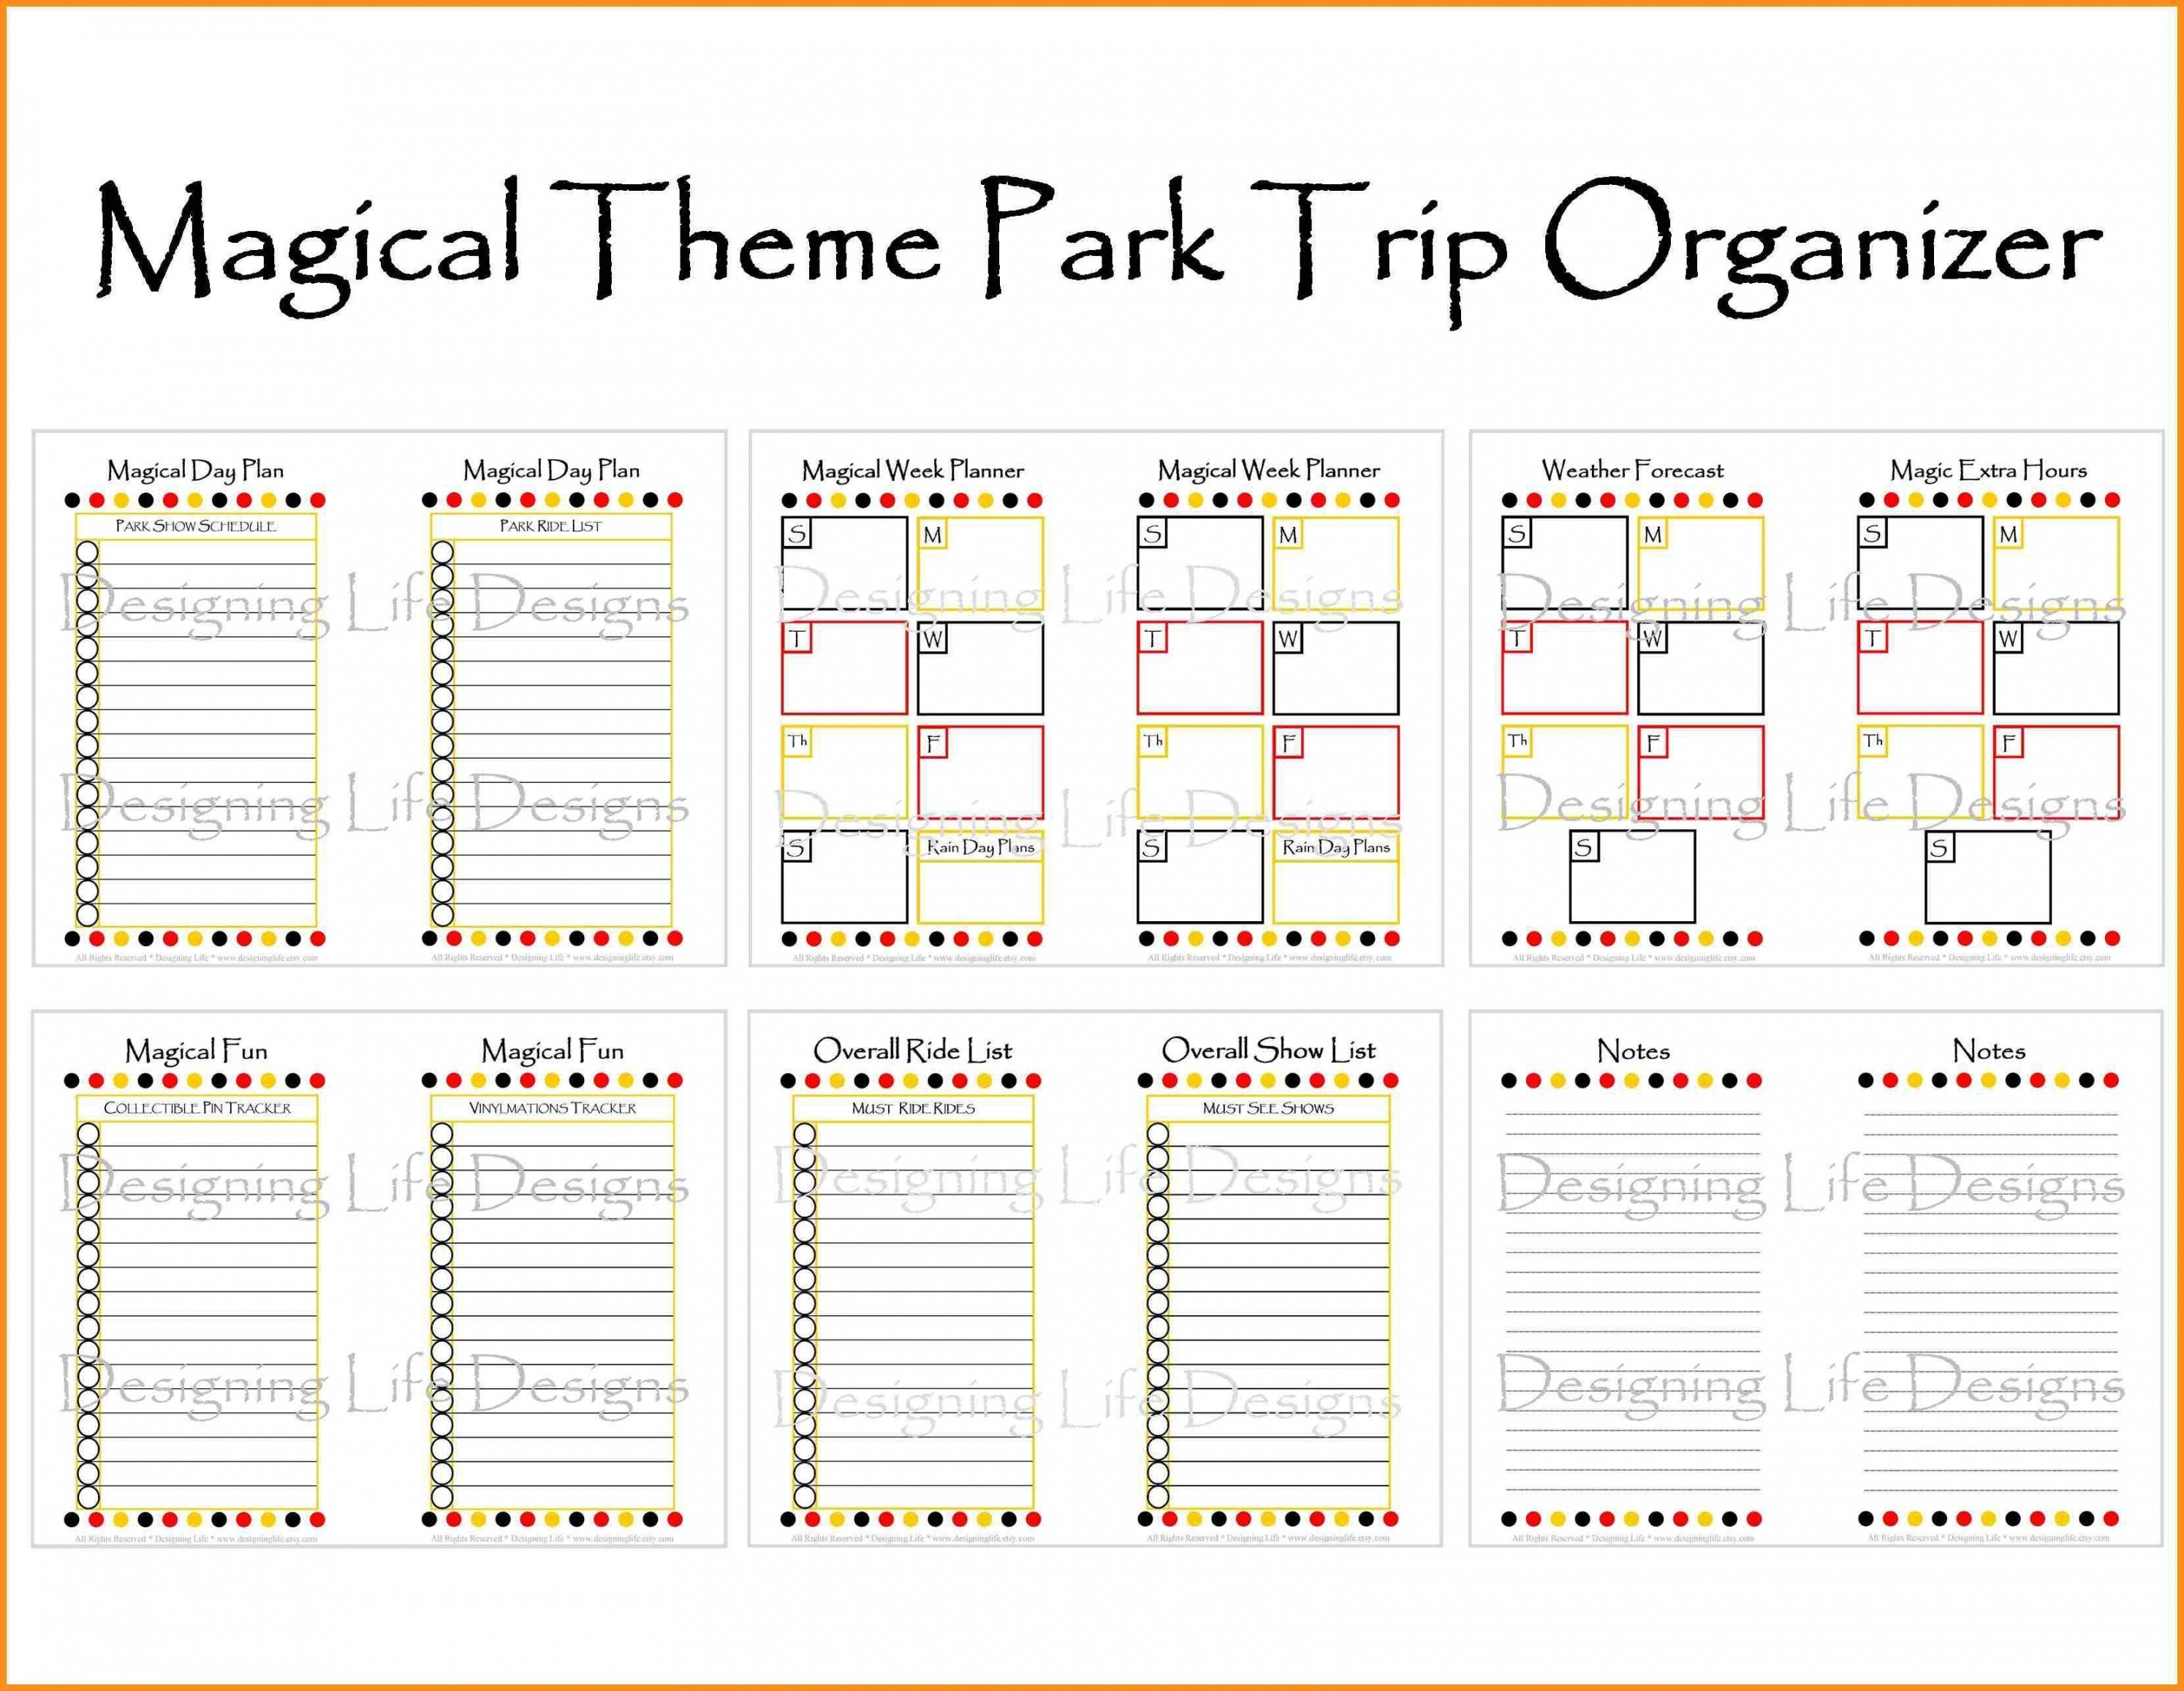 Image Result For Disney World Itinerary Template Disney Fun-Disney World Itinerary Template Download